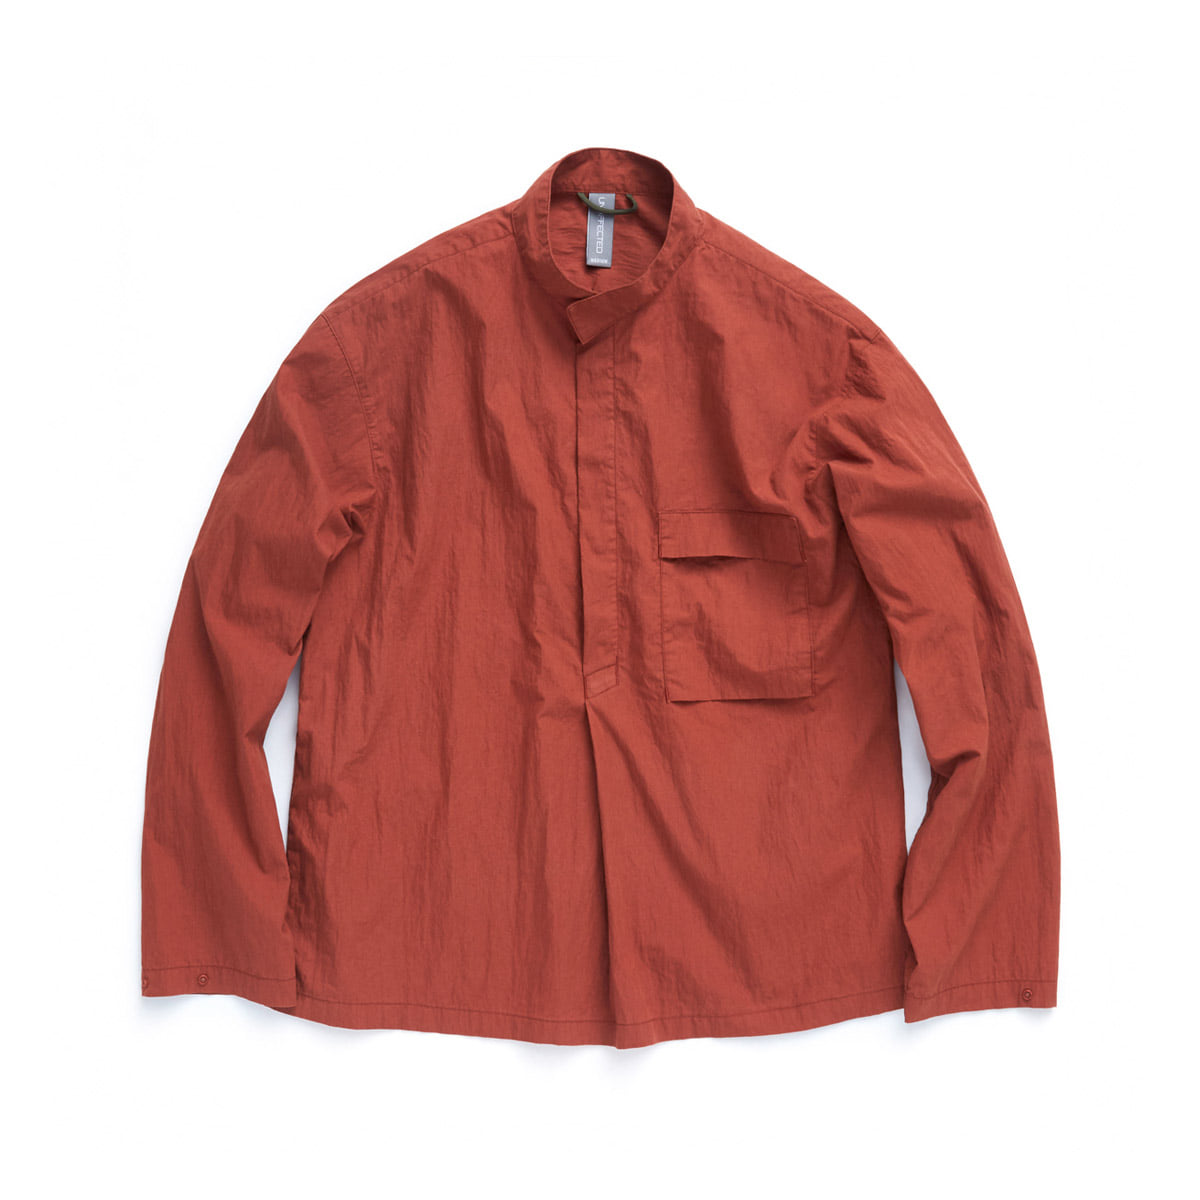 [UNAFFECTED] MOCKNECK SHIRT 'BURNT ORANGE'